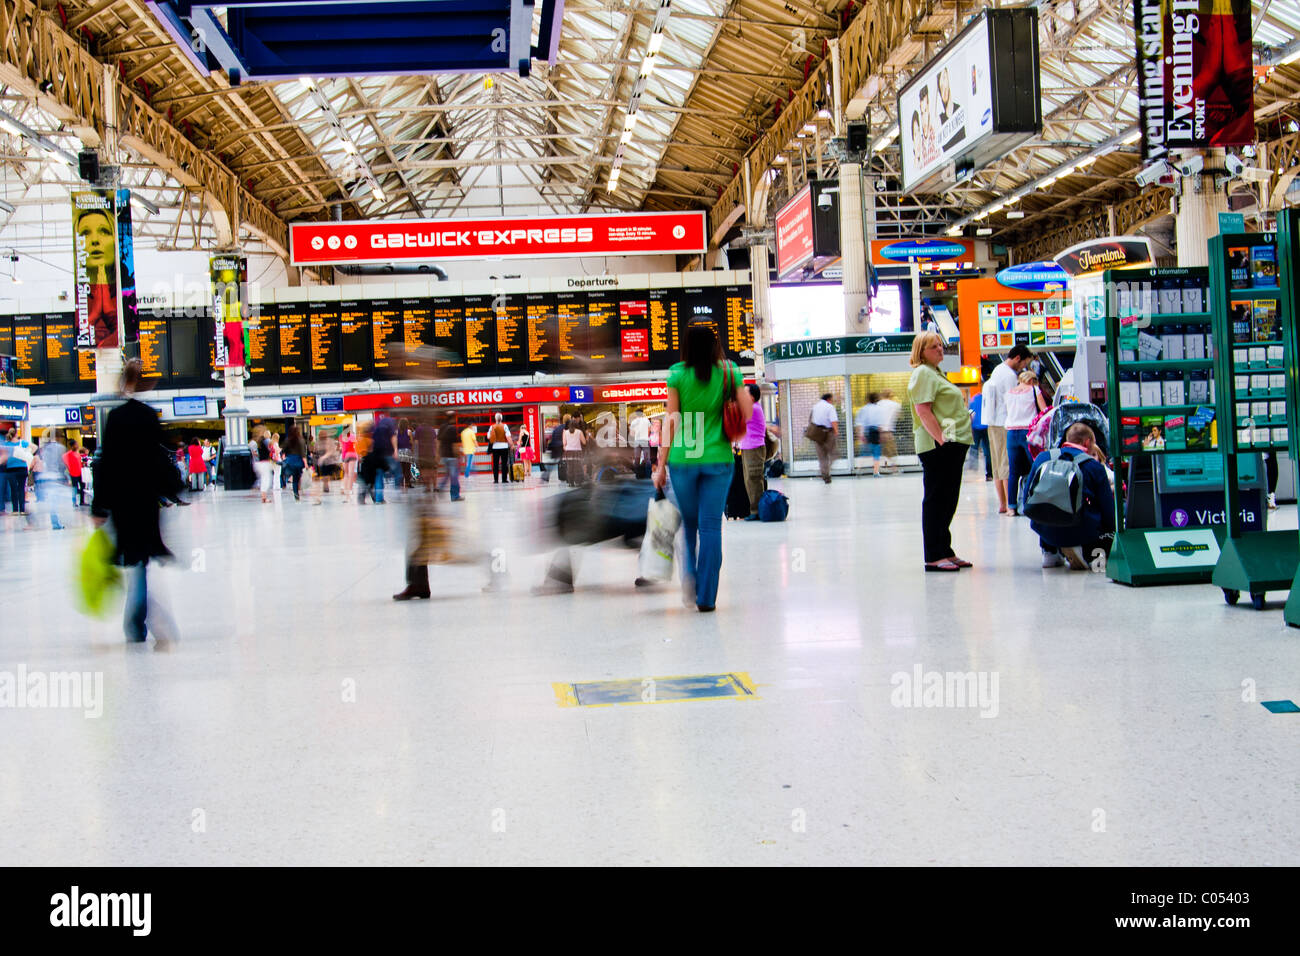 Interior of Victoria Station in London, England. - Stock Image